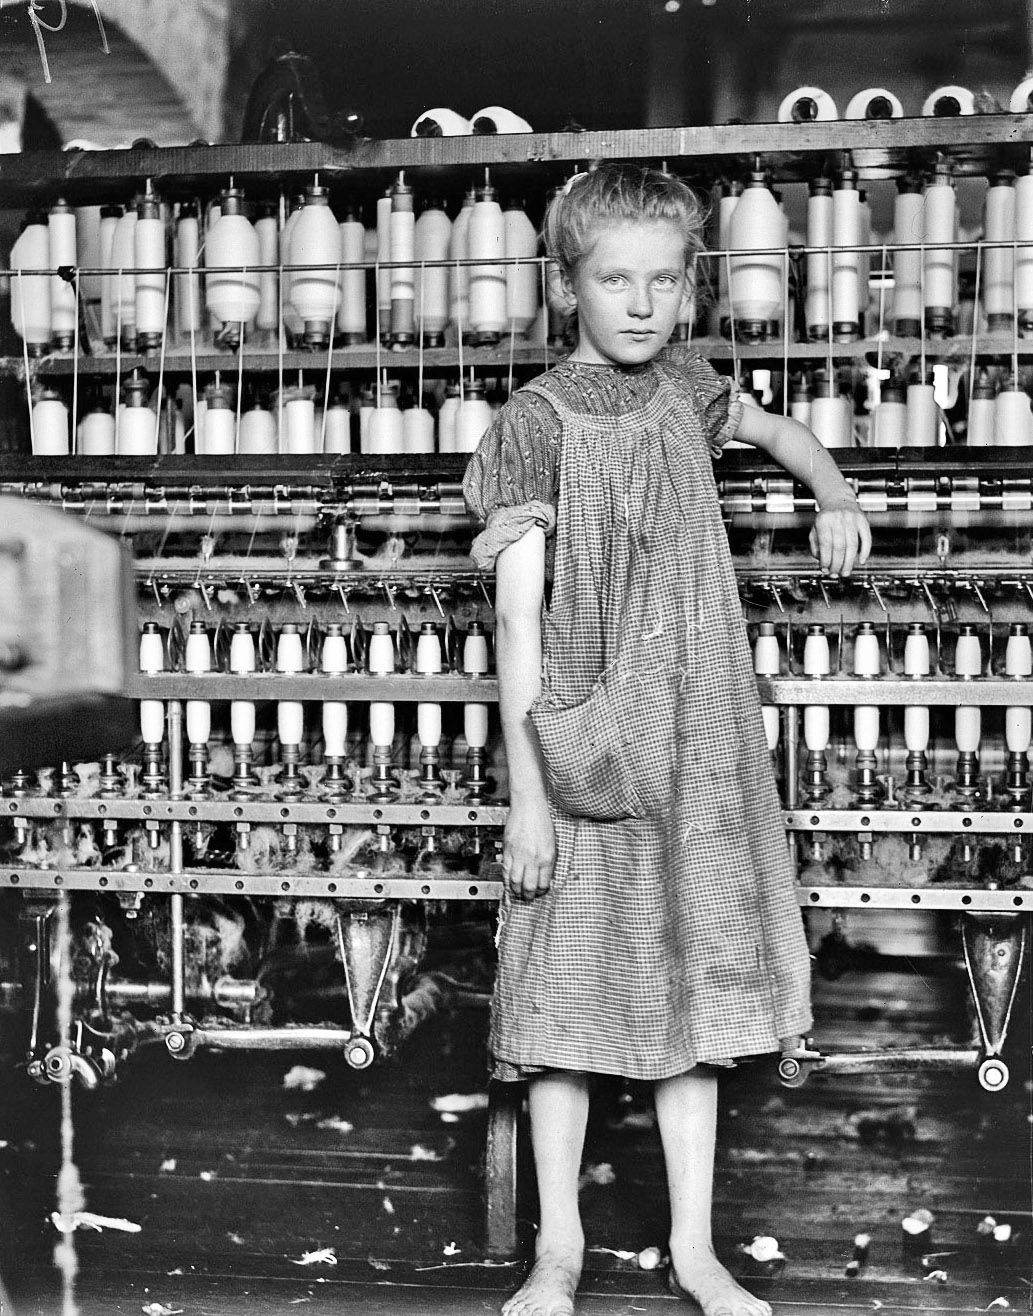 This photo is part of a collection from Lewis Hine, who